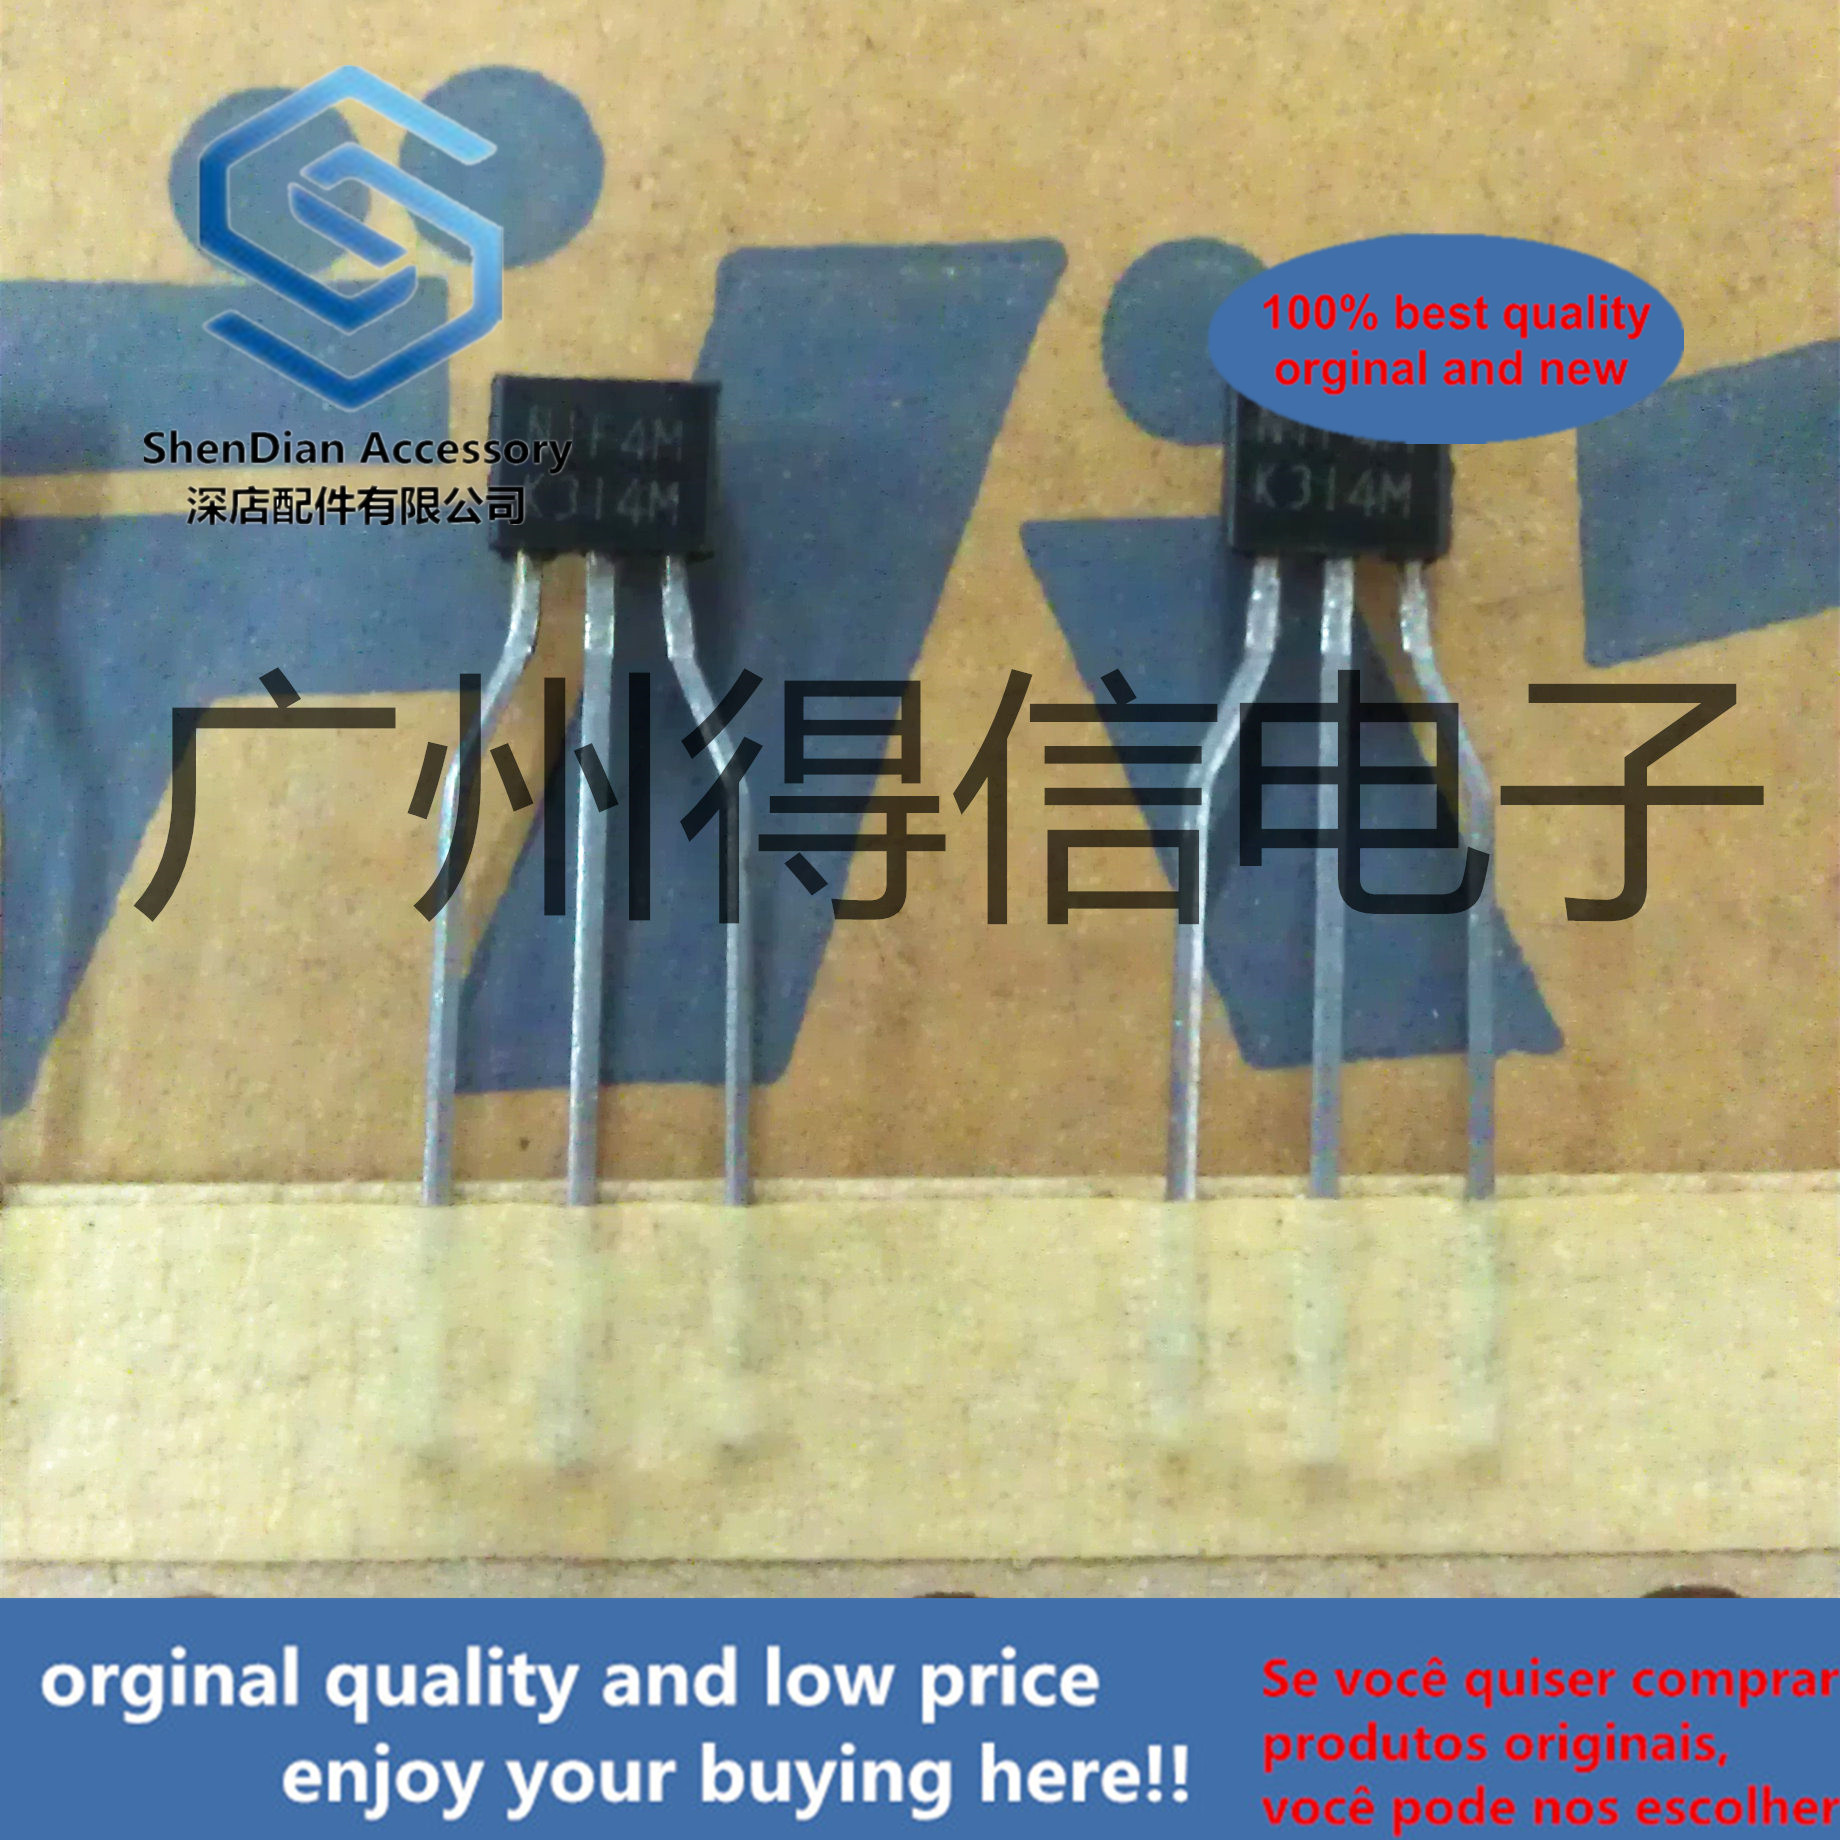 30pcs 100% Orginal New BN1F4M  TO-92S Built-in Resistance R1R2 Are All 22KΩ Taping  Real Photo